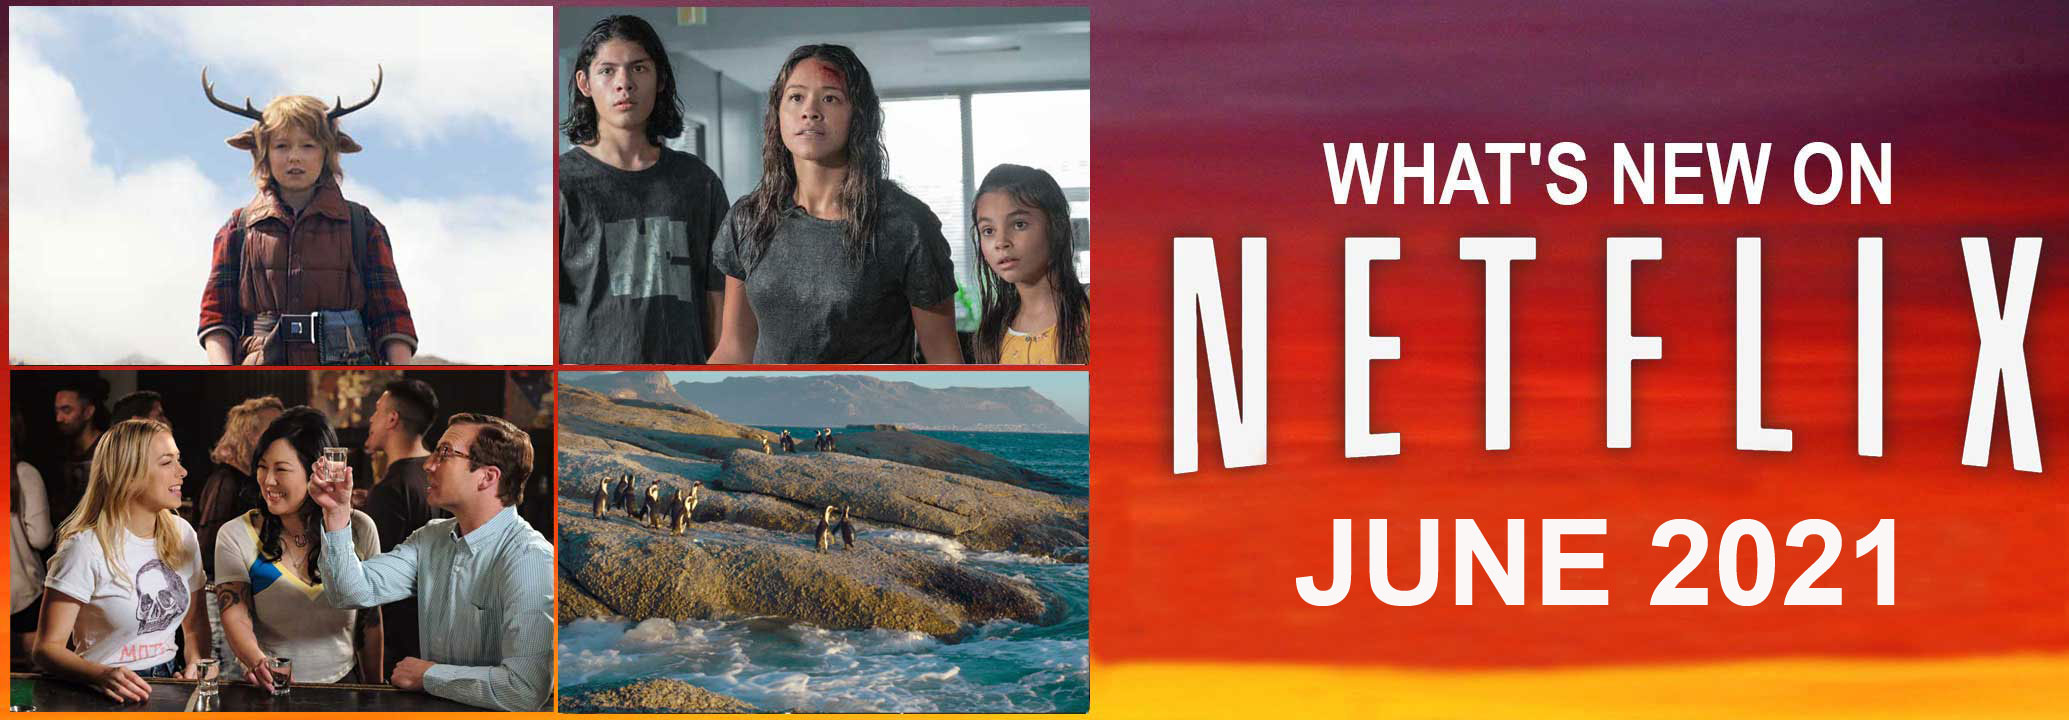 What's New on Netflix June 2021